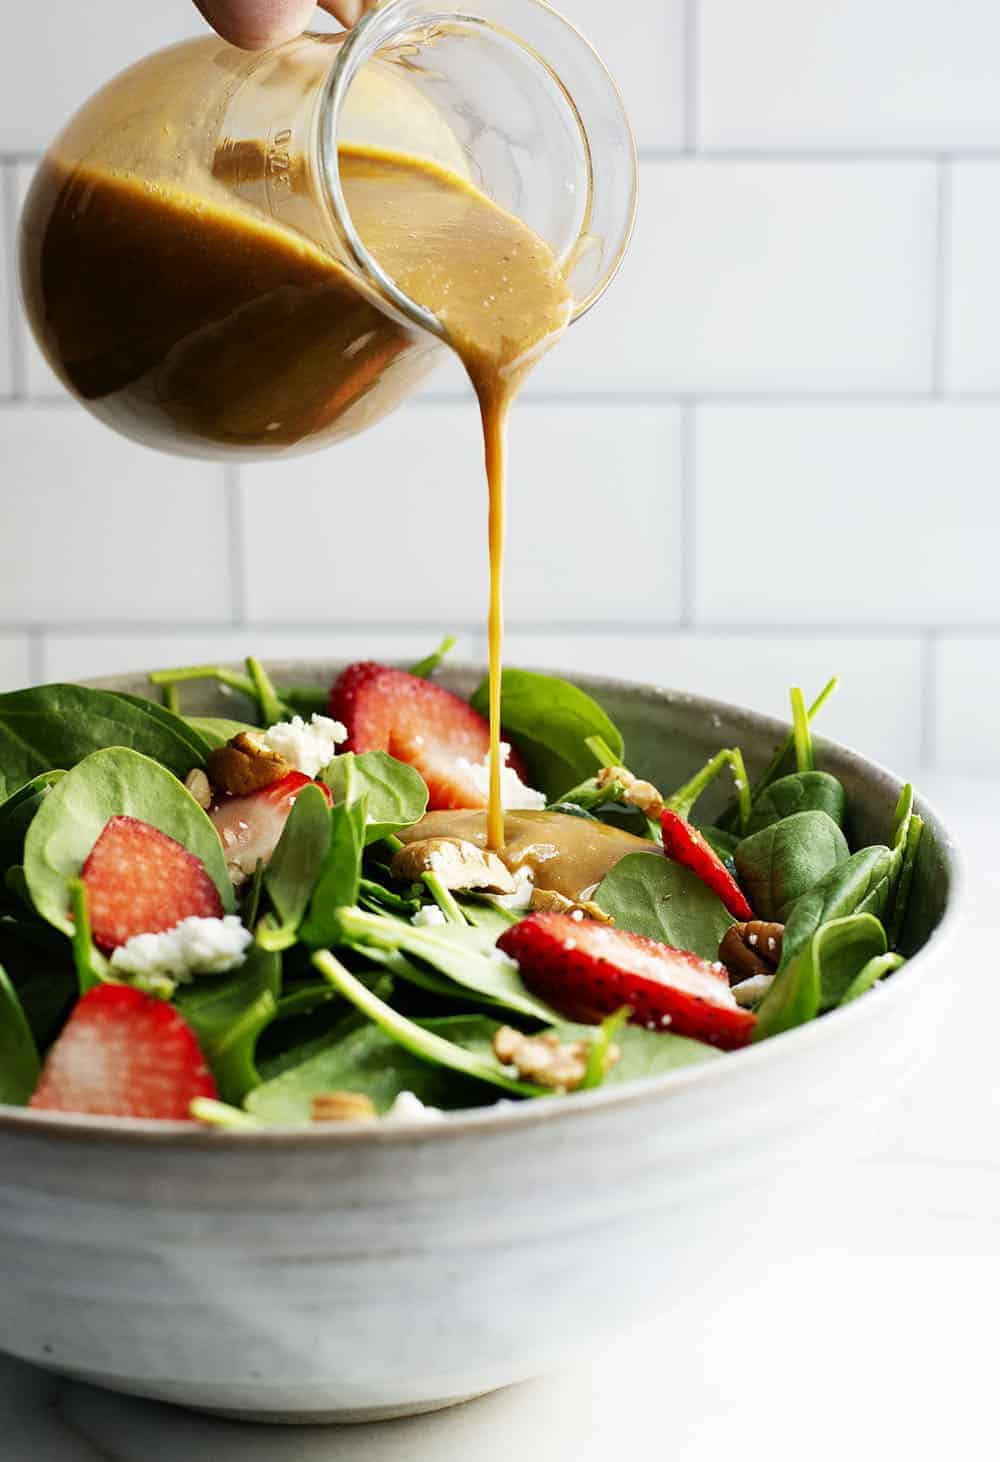 pouring balsamic vinaigrette from glass pitcher